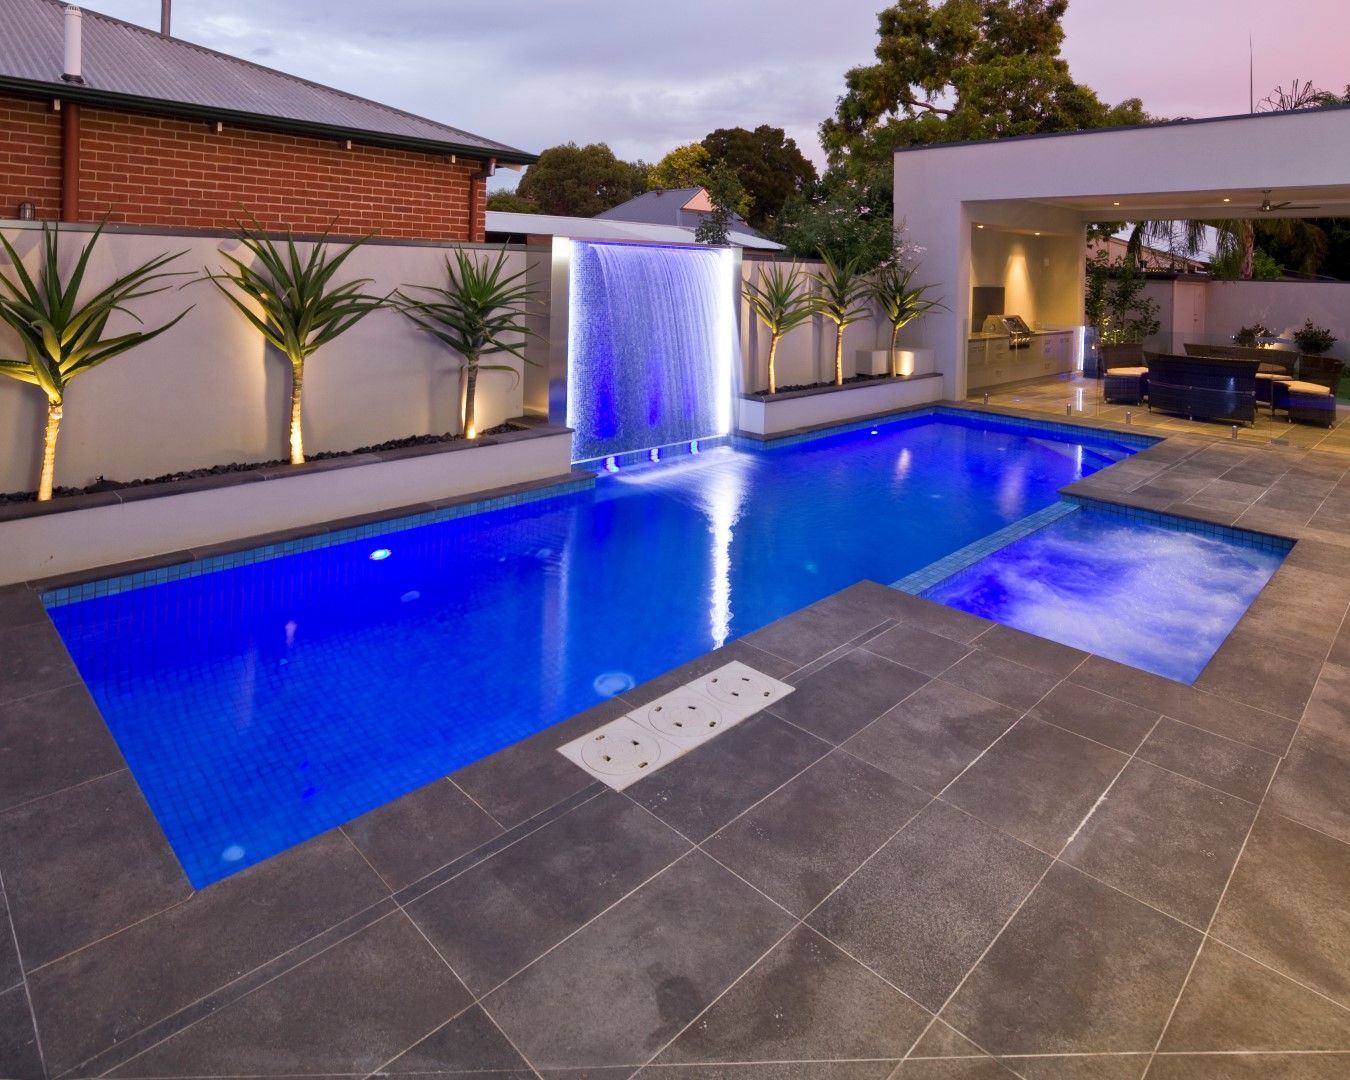 Superior Our Concrete Pools In Perth Can Be Made To Suit Your Home, Design  Preferences And Budget. Speak To One Of Our Agents At Freedom Pools Today!